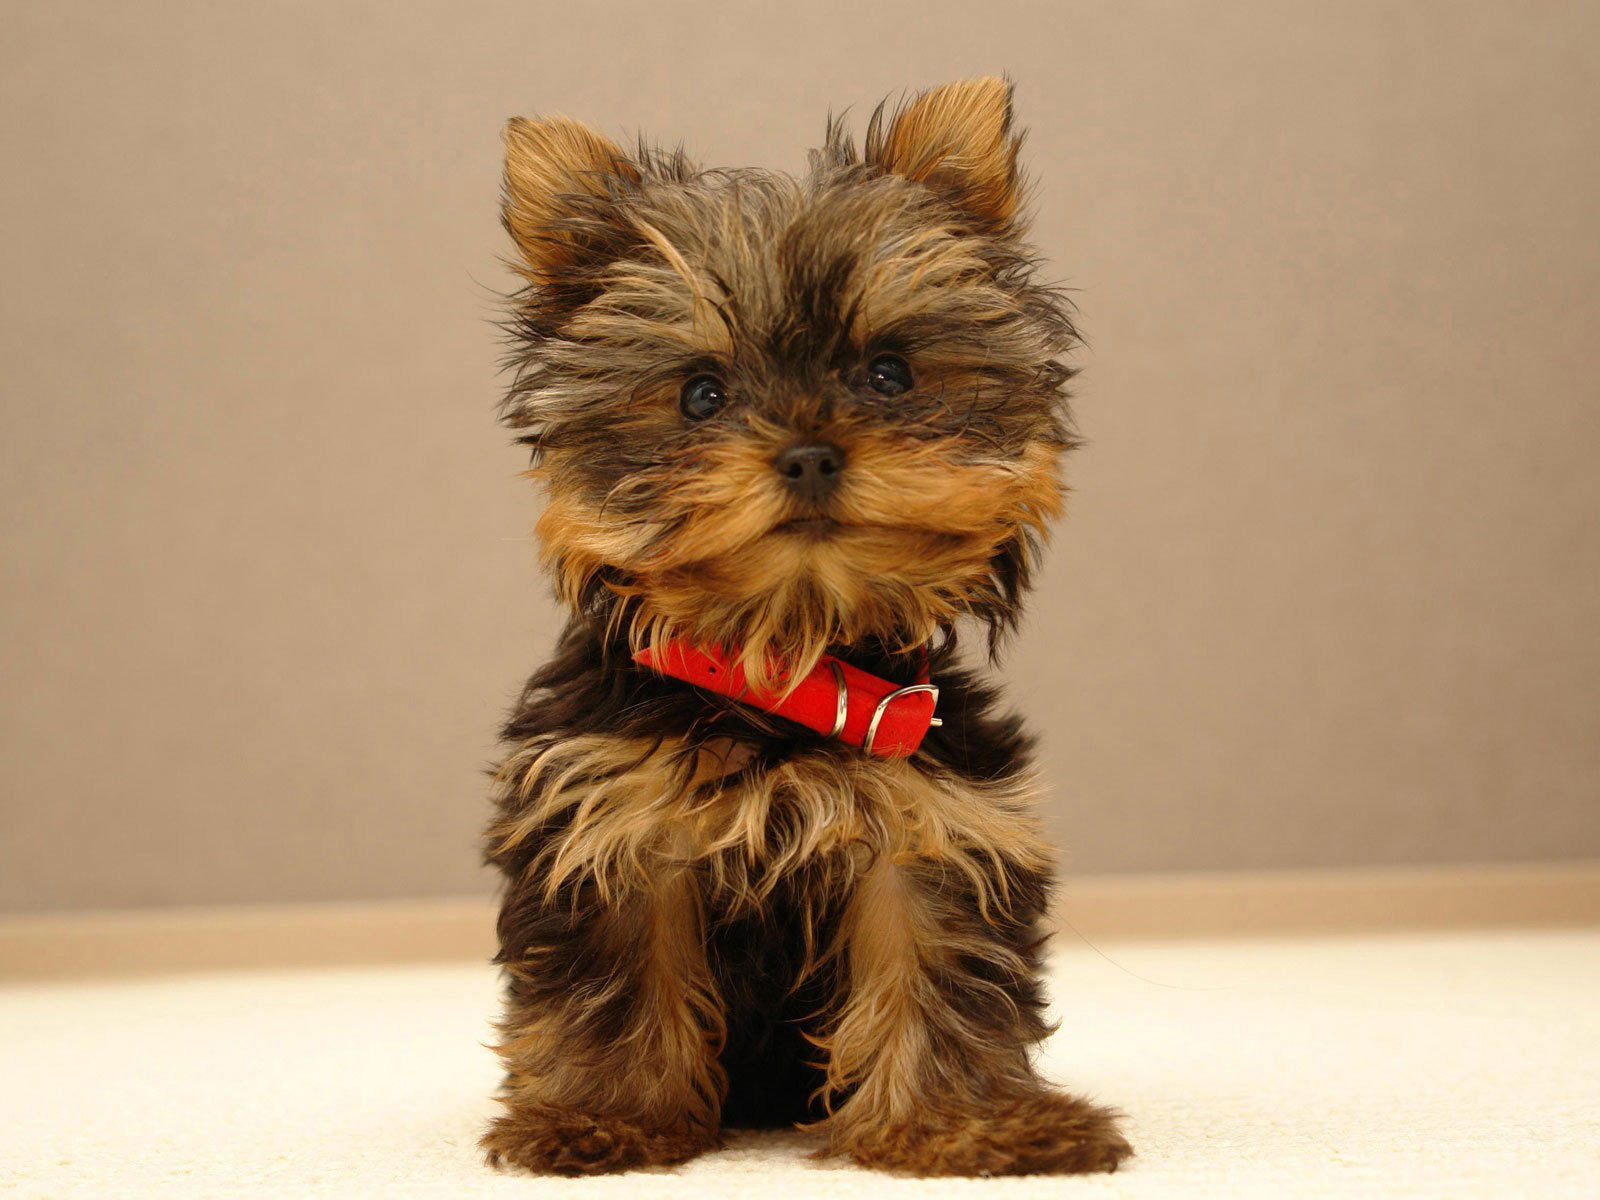 Lovely Yorkshire Terrier dog wallpaper